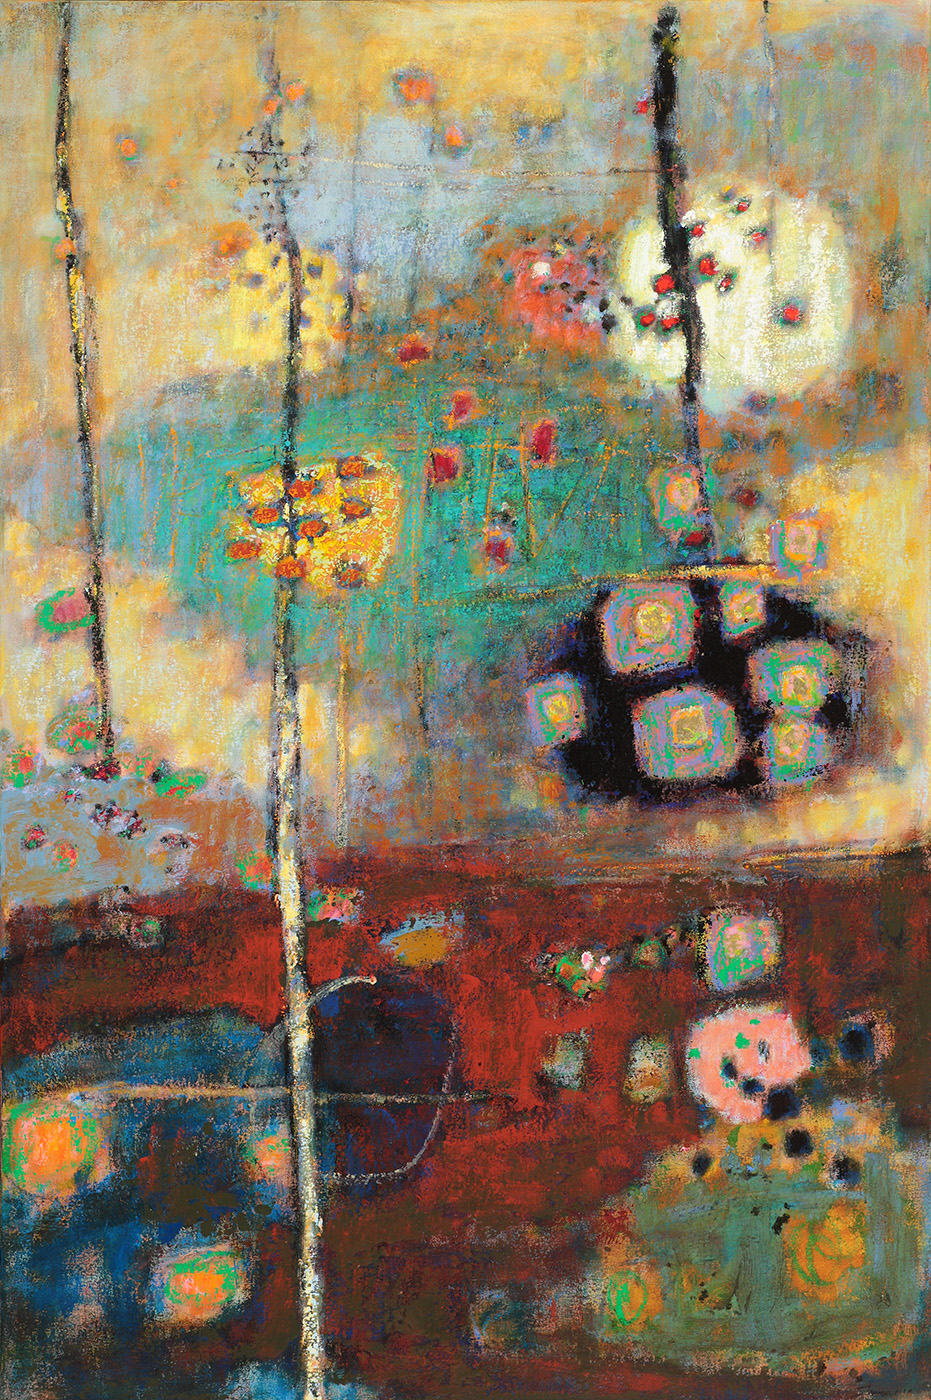 Rising From the Depths | oil on canvas | 48 x 32"